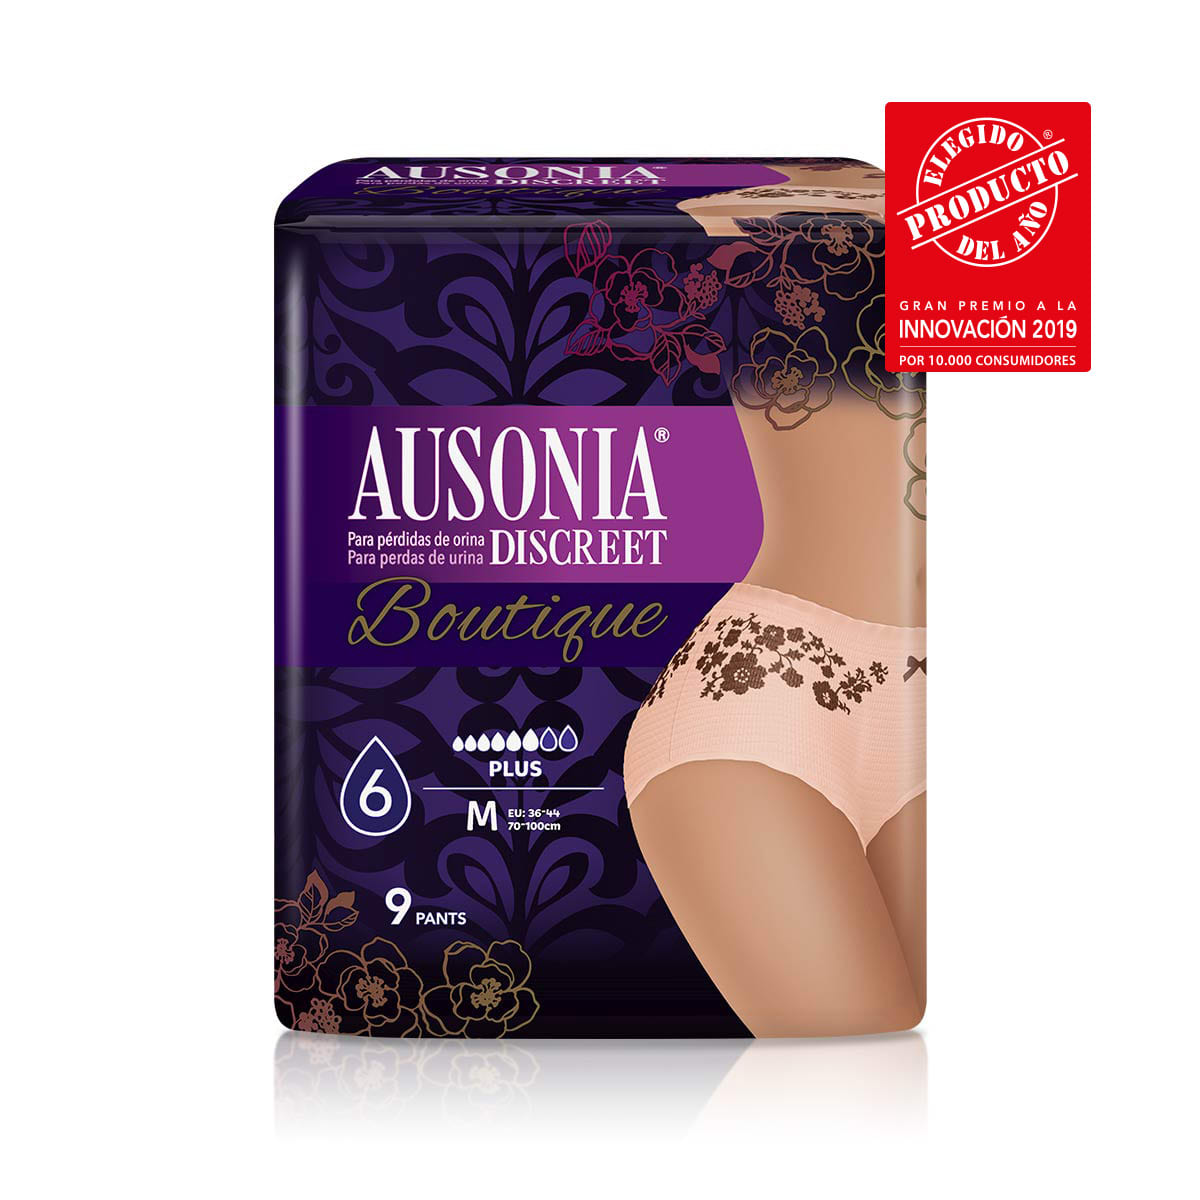 Ausonia Discreet Boutique